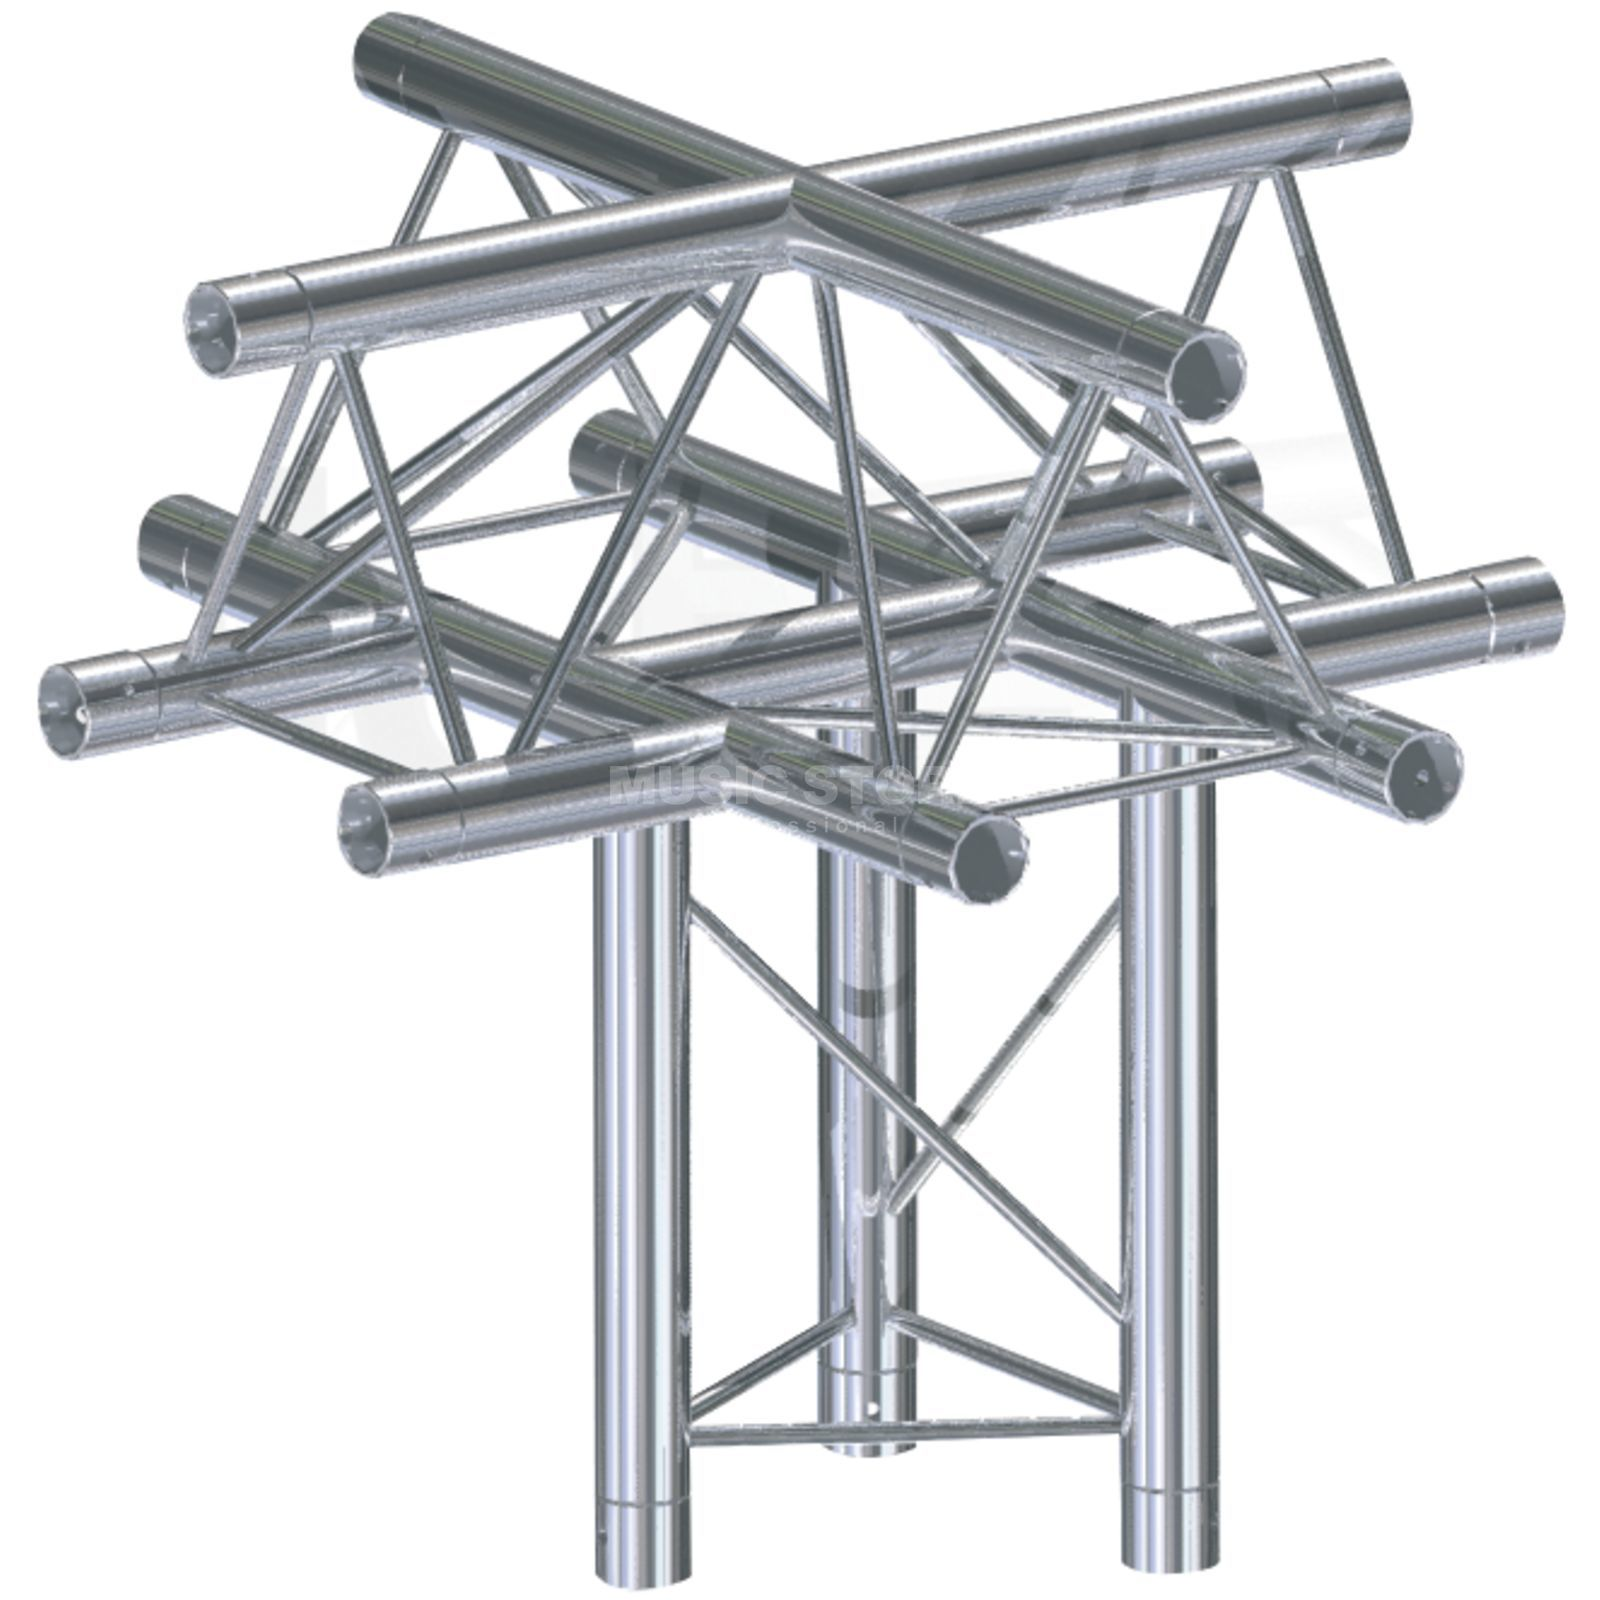 Global Truss F33, XU-X Piece C52 3-Point, 5-Way Cross Product Image